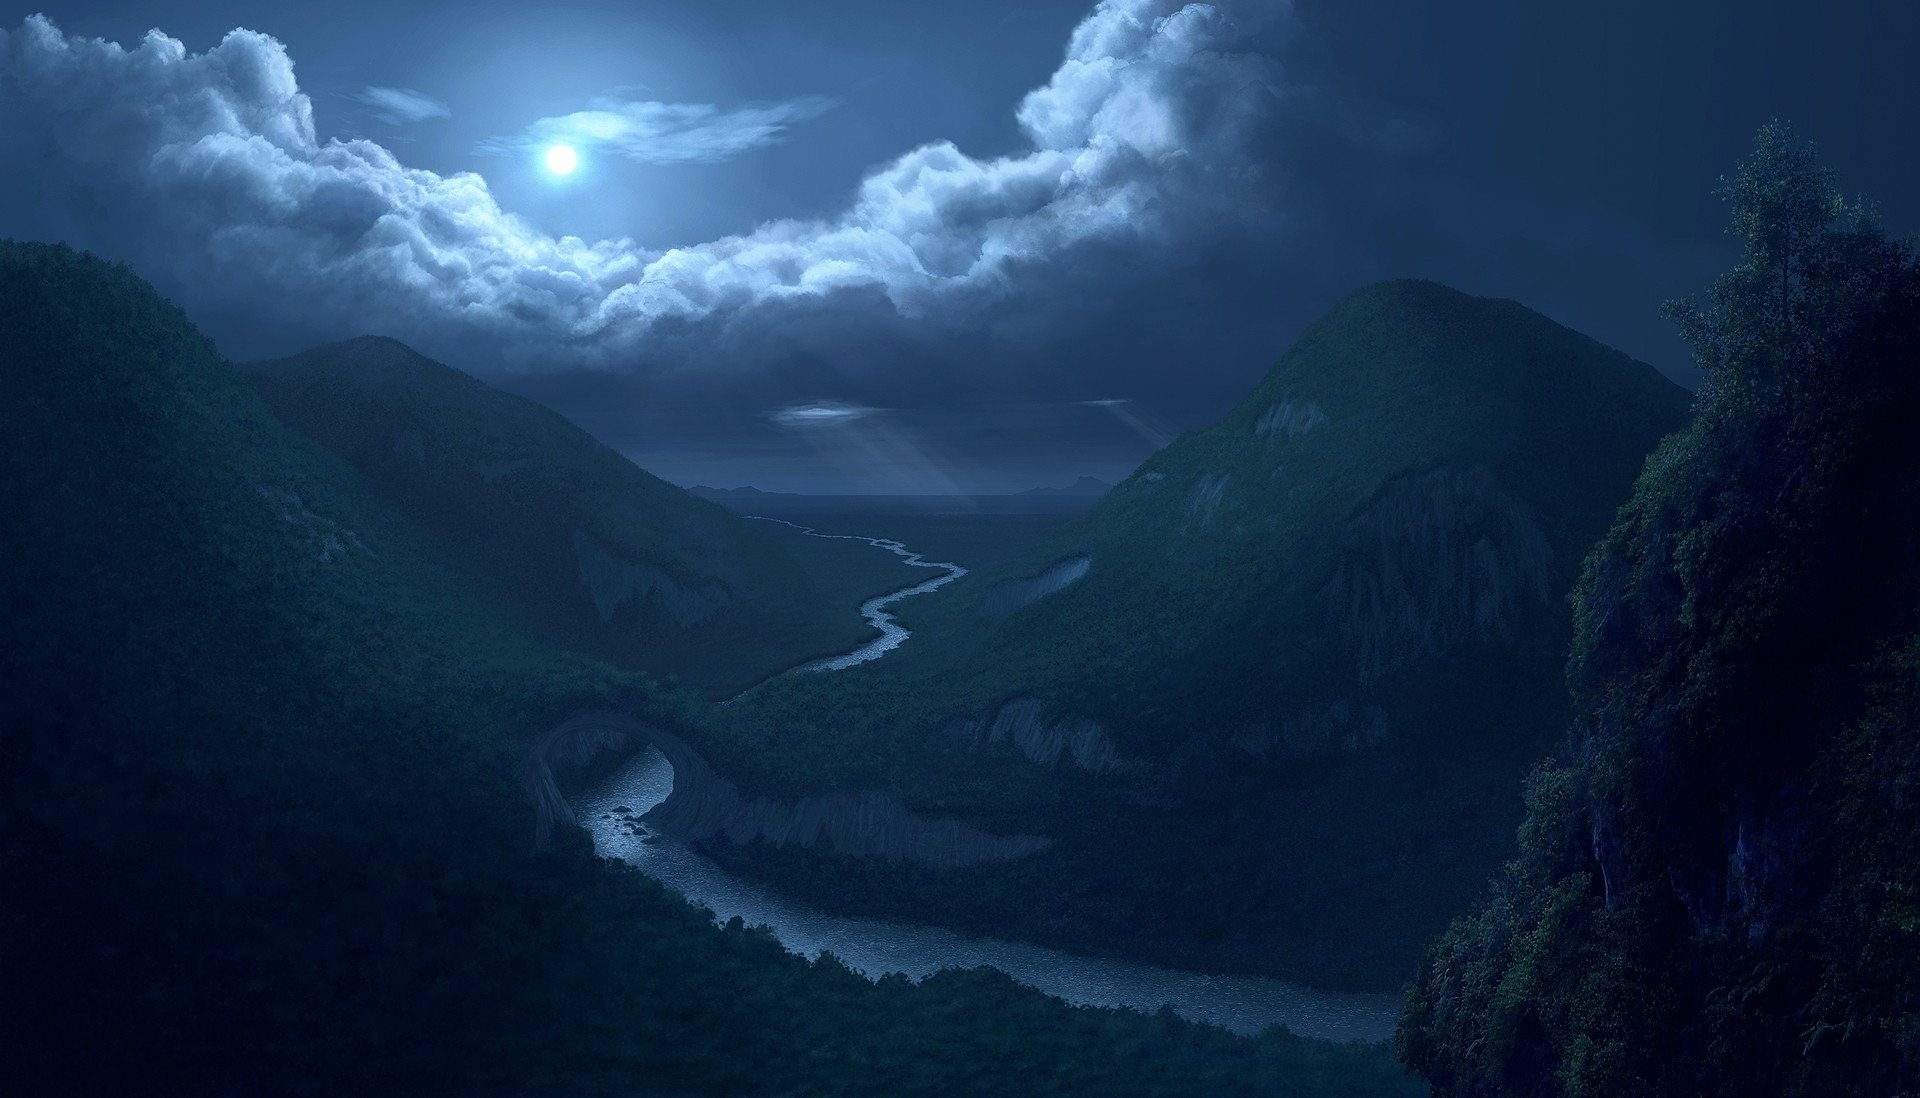 forest woods night sky moon clouds reflection wallpaper background 1920x1098